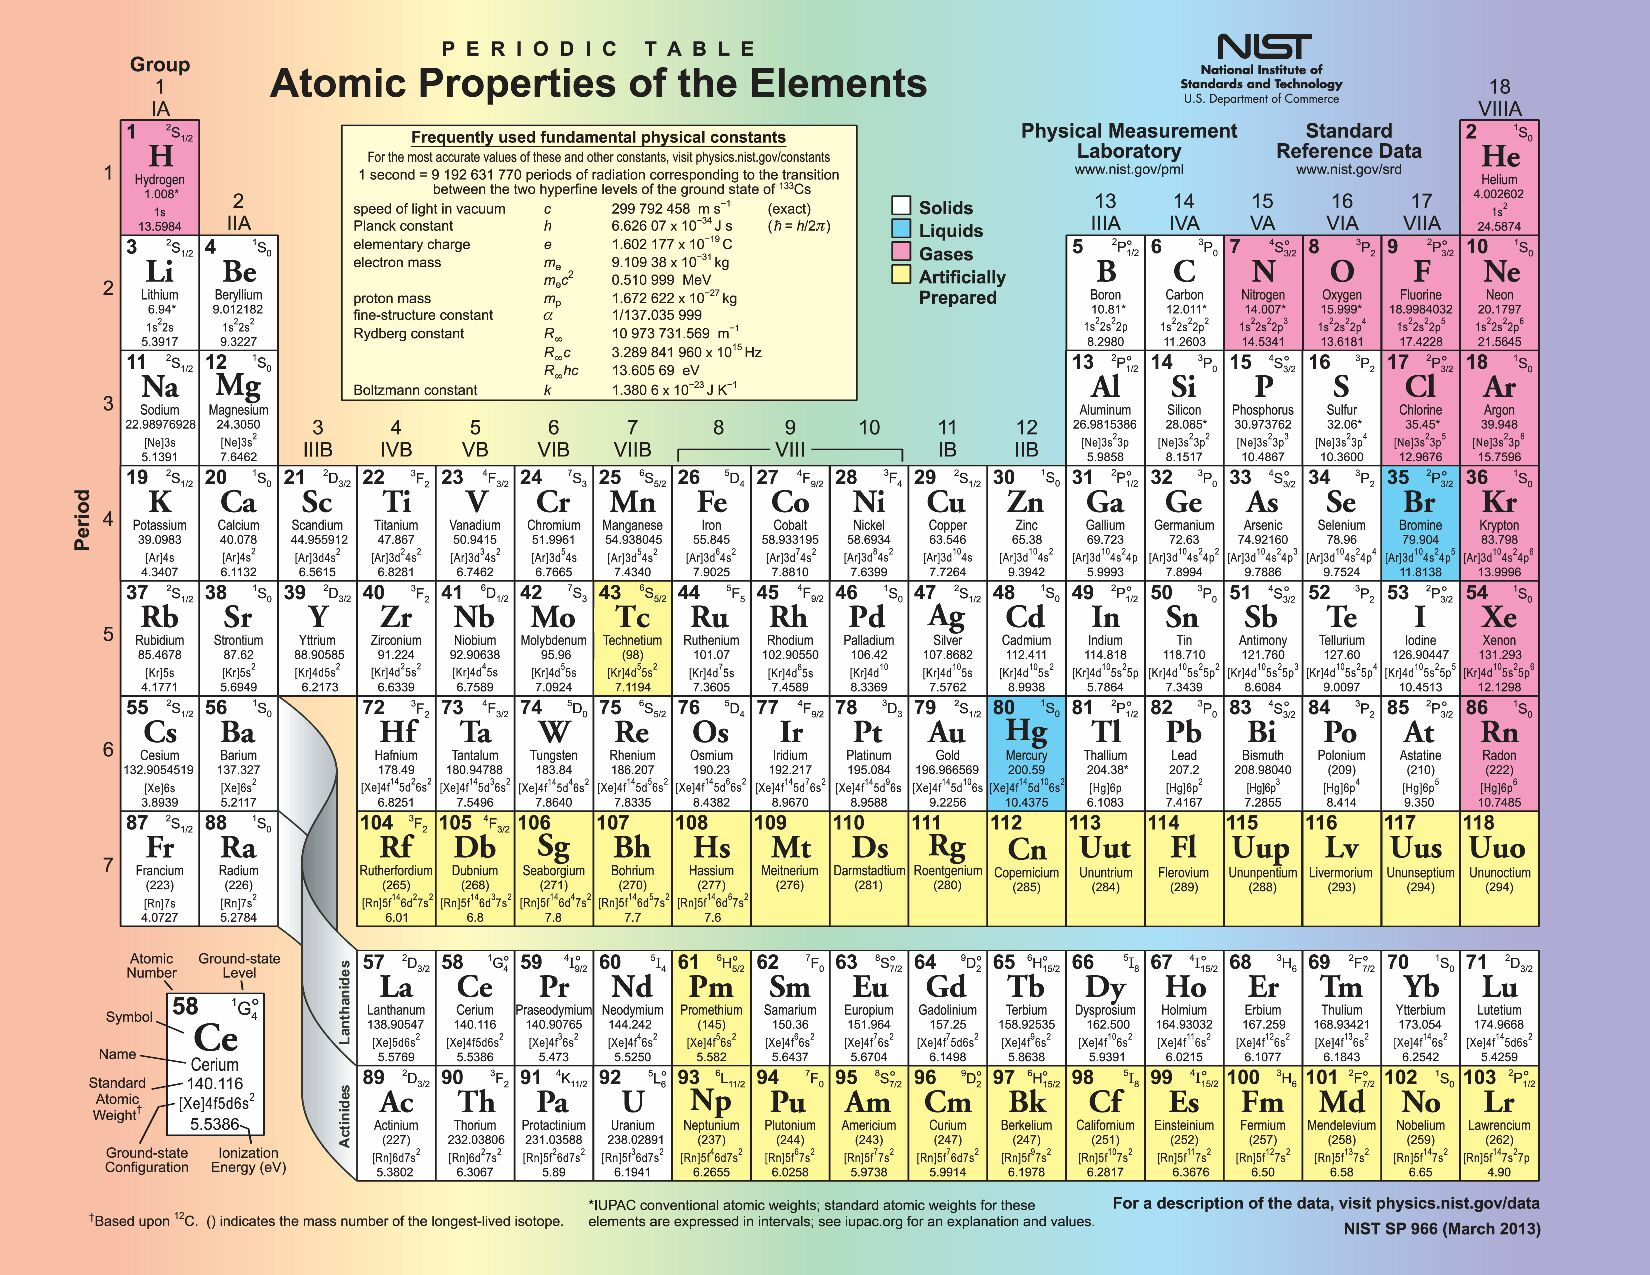 Periodic Tables Of The Elements In American Englishmichael Canov Wiring Diagram Moreover 2 Way Lighting Circuit On 4 Switch Amer6